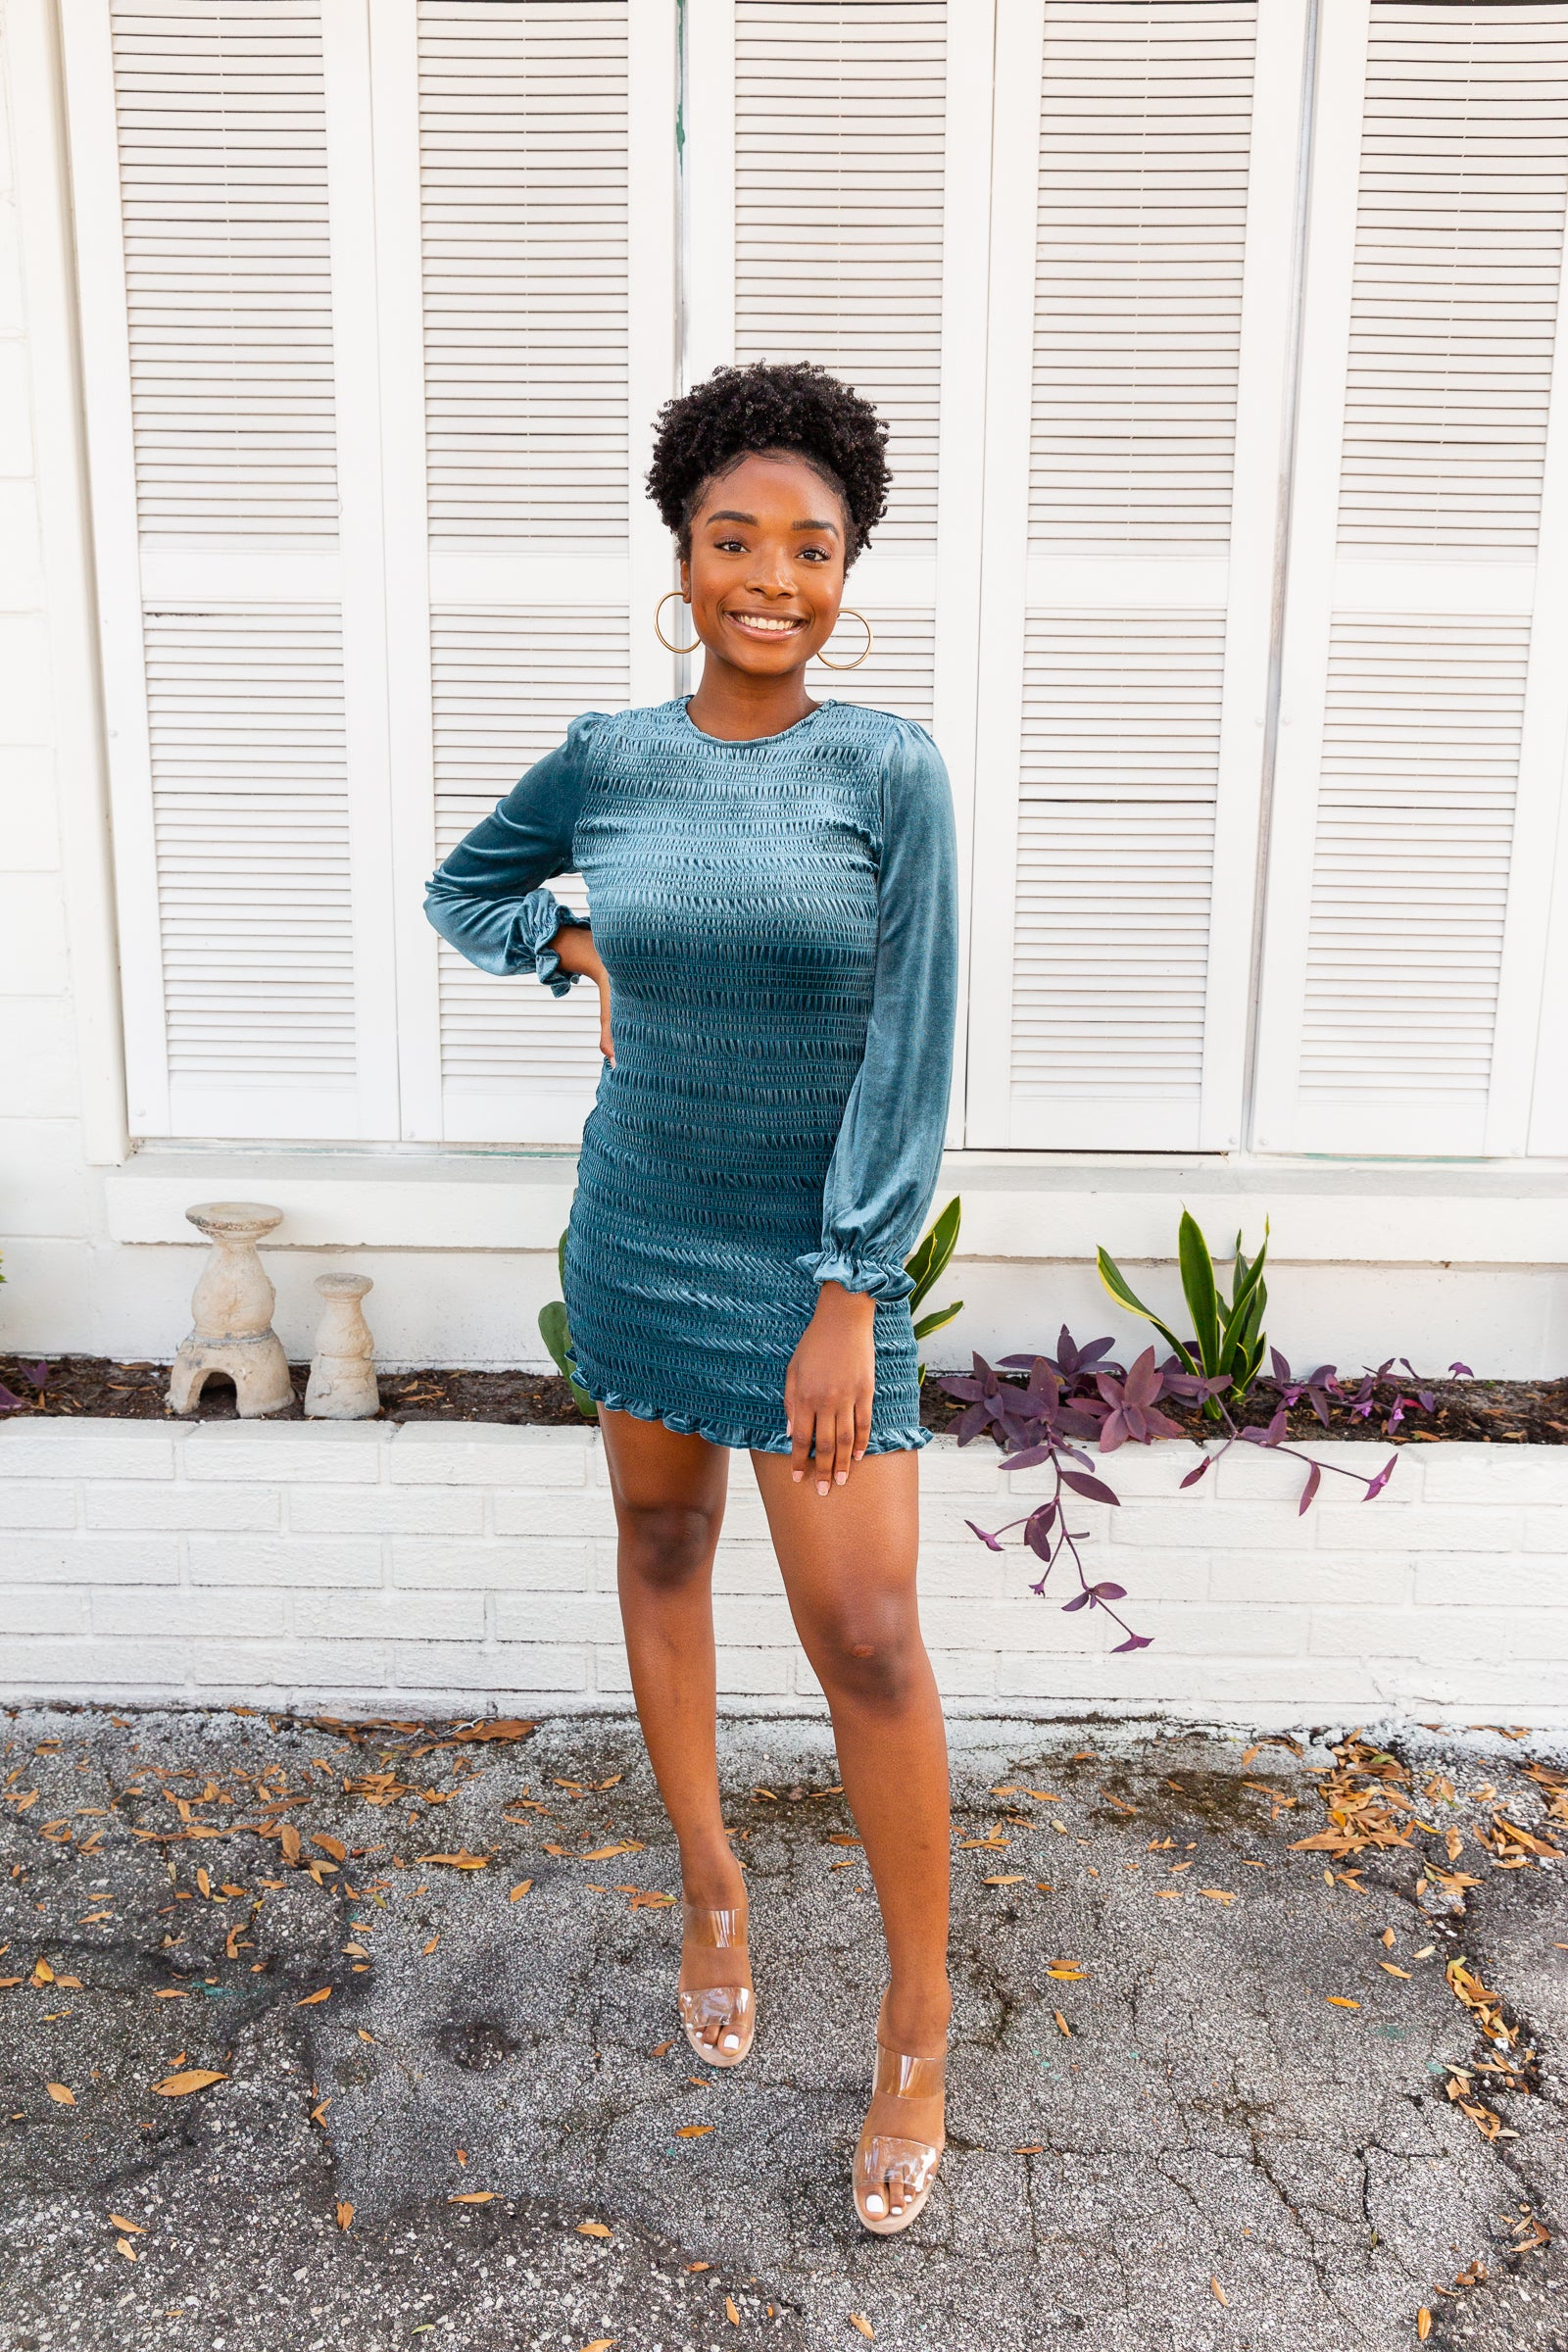 Long elastic ruffle cuffed sleeves attach to a u-neckline on a smocked bodice. This curve-hugging and bodycon dress has a ruffle trim at the bottom.